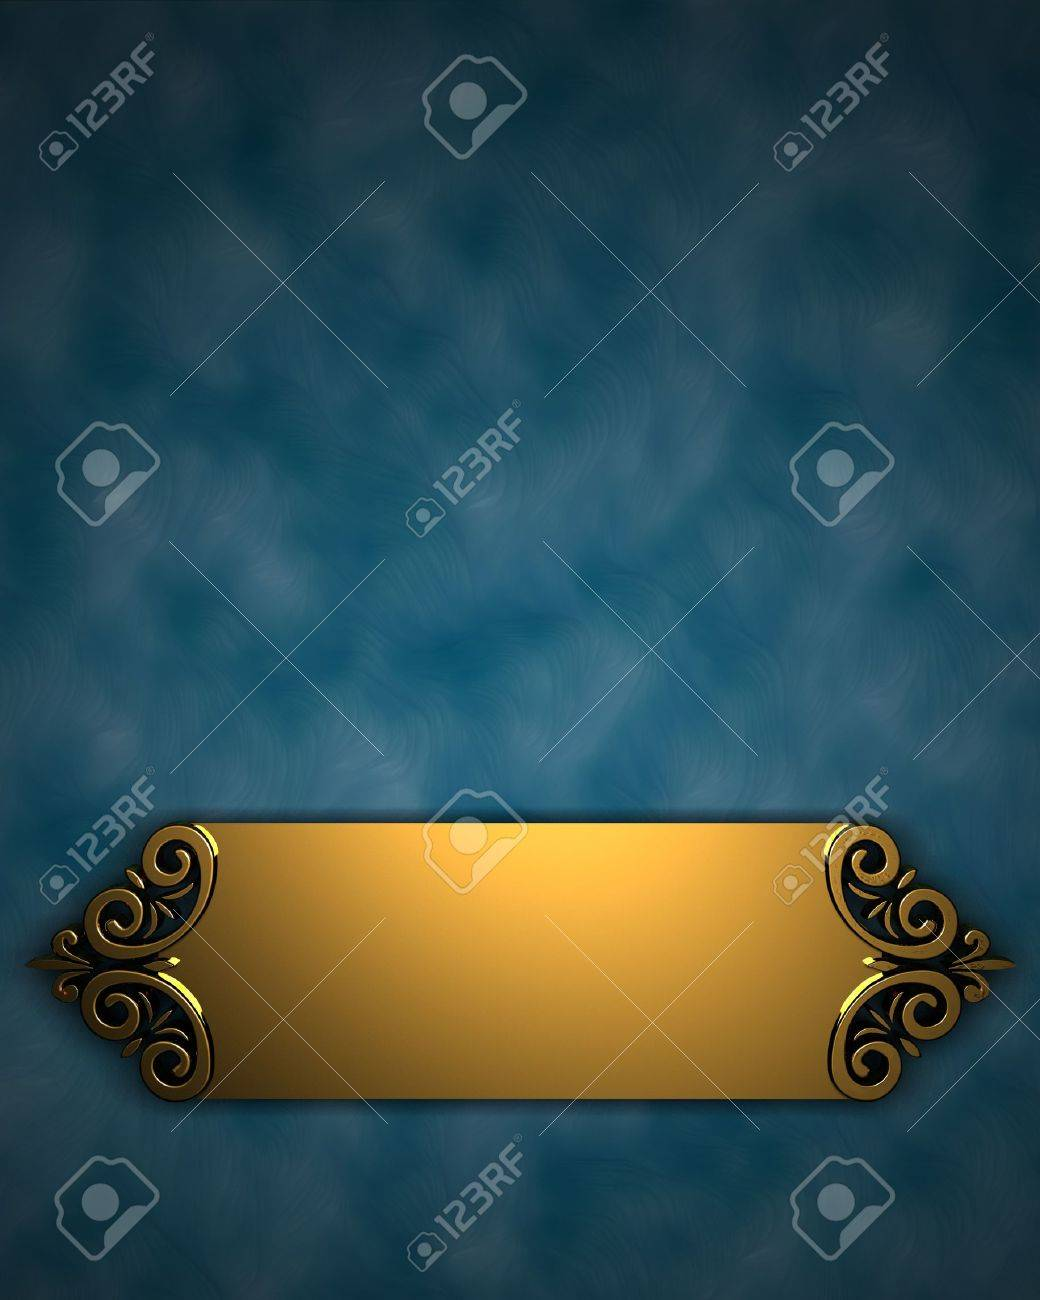 Blue Background with Golden Band Stock Photo - 12897044